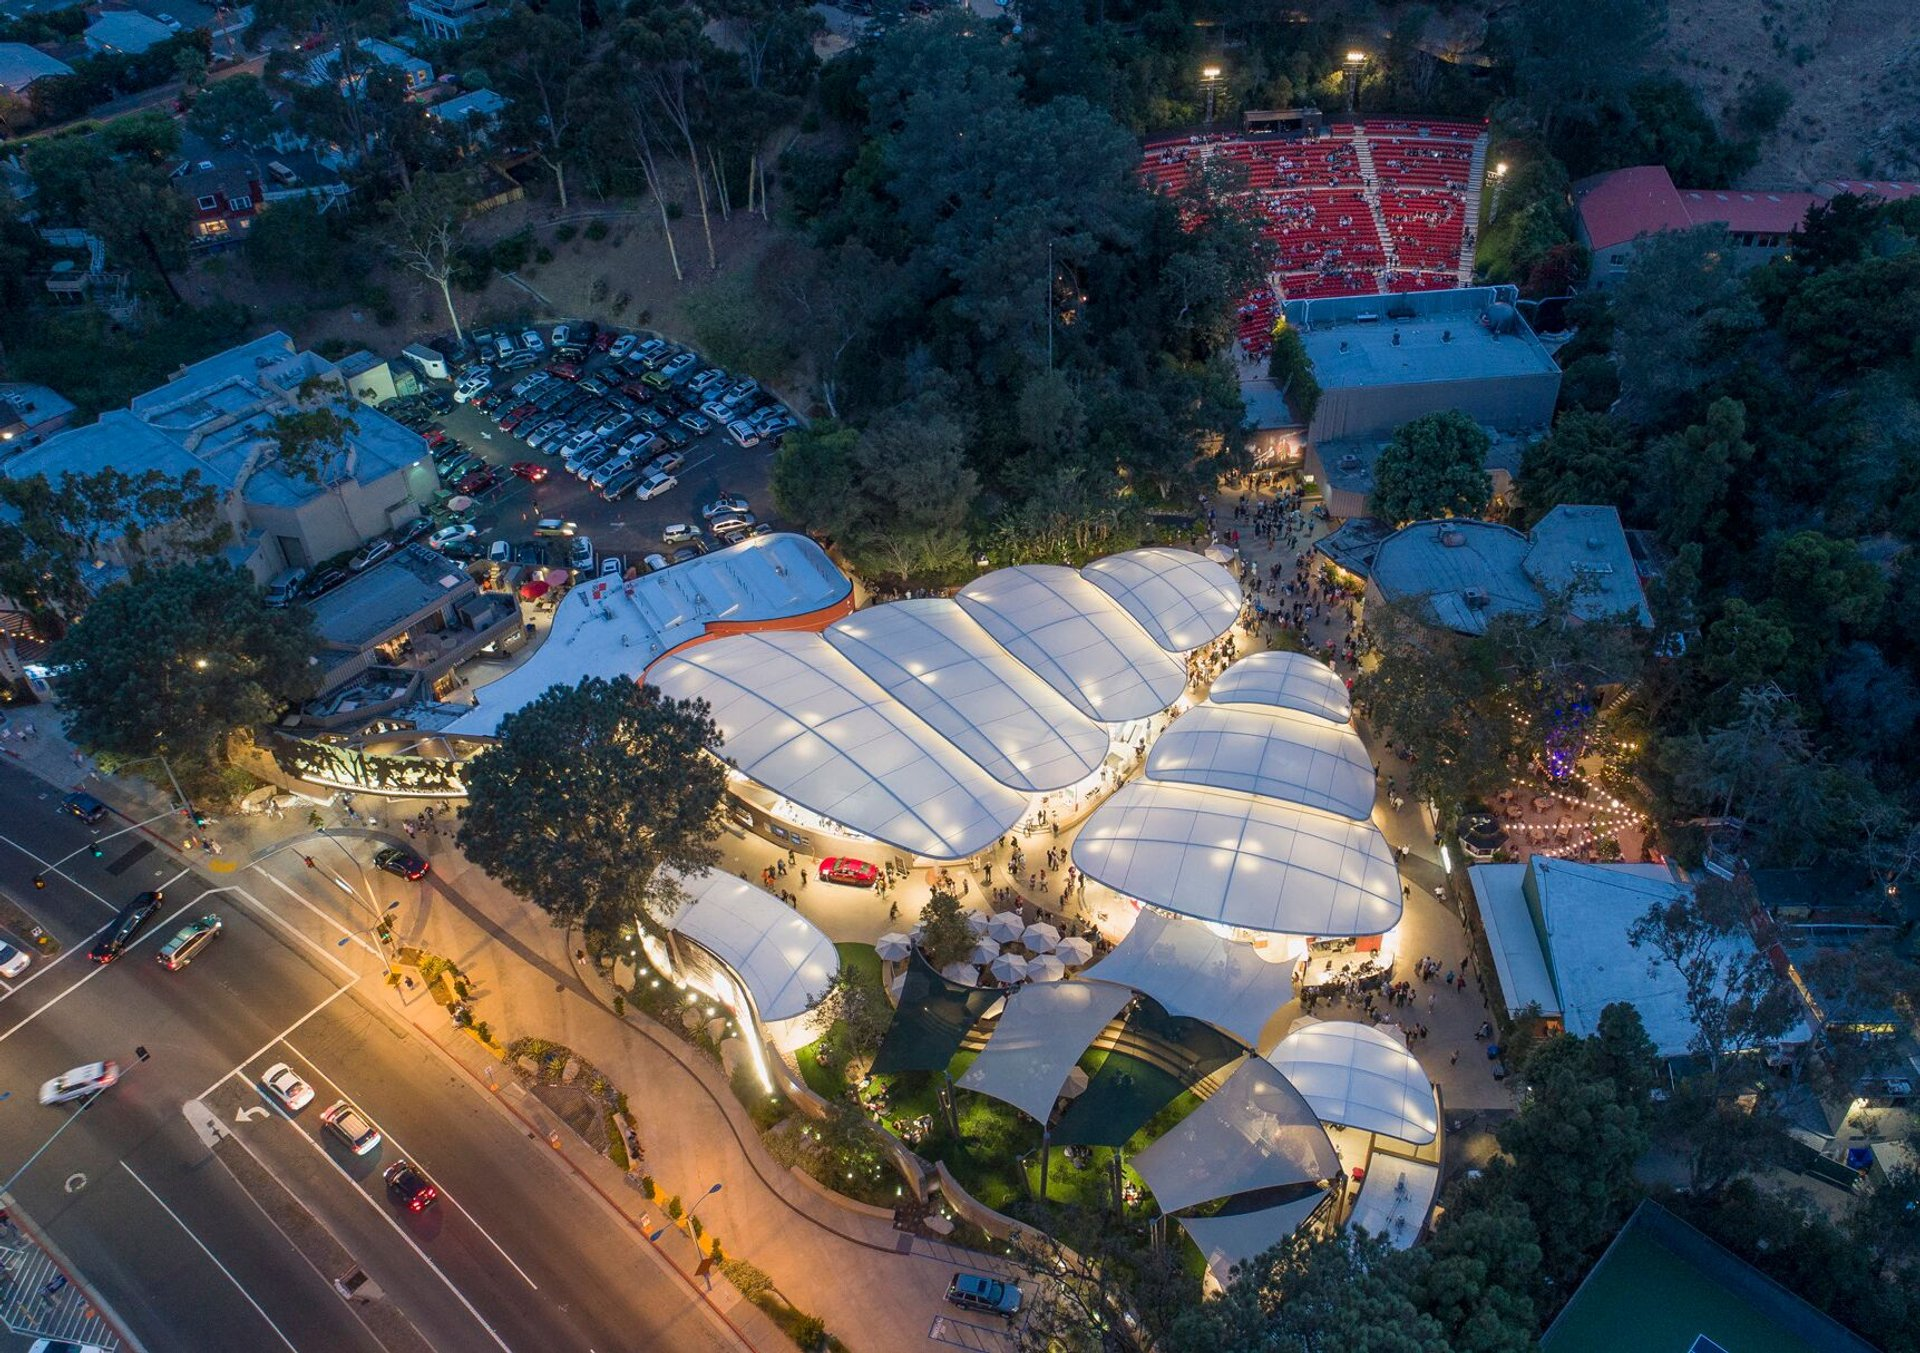 Aerial view of the festival venue 2020